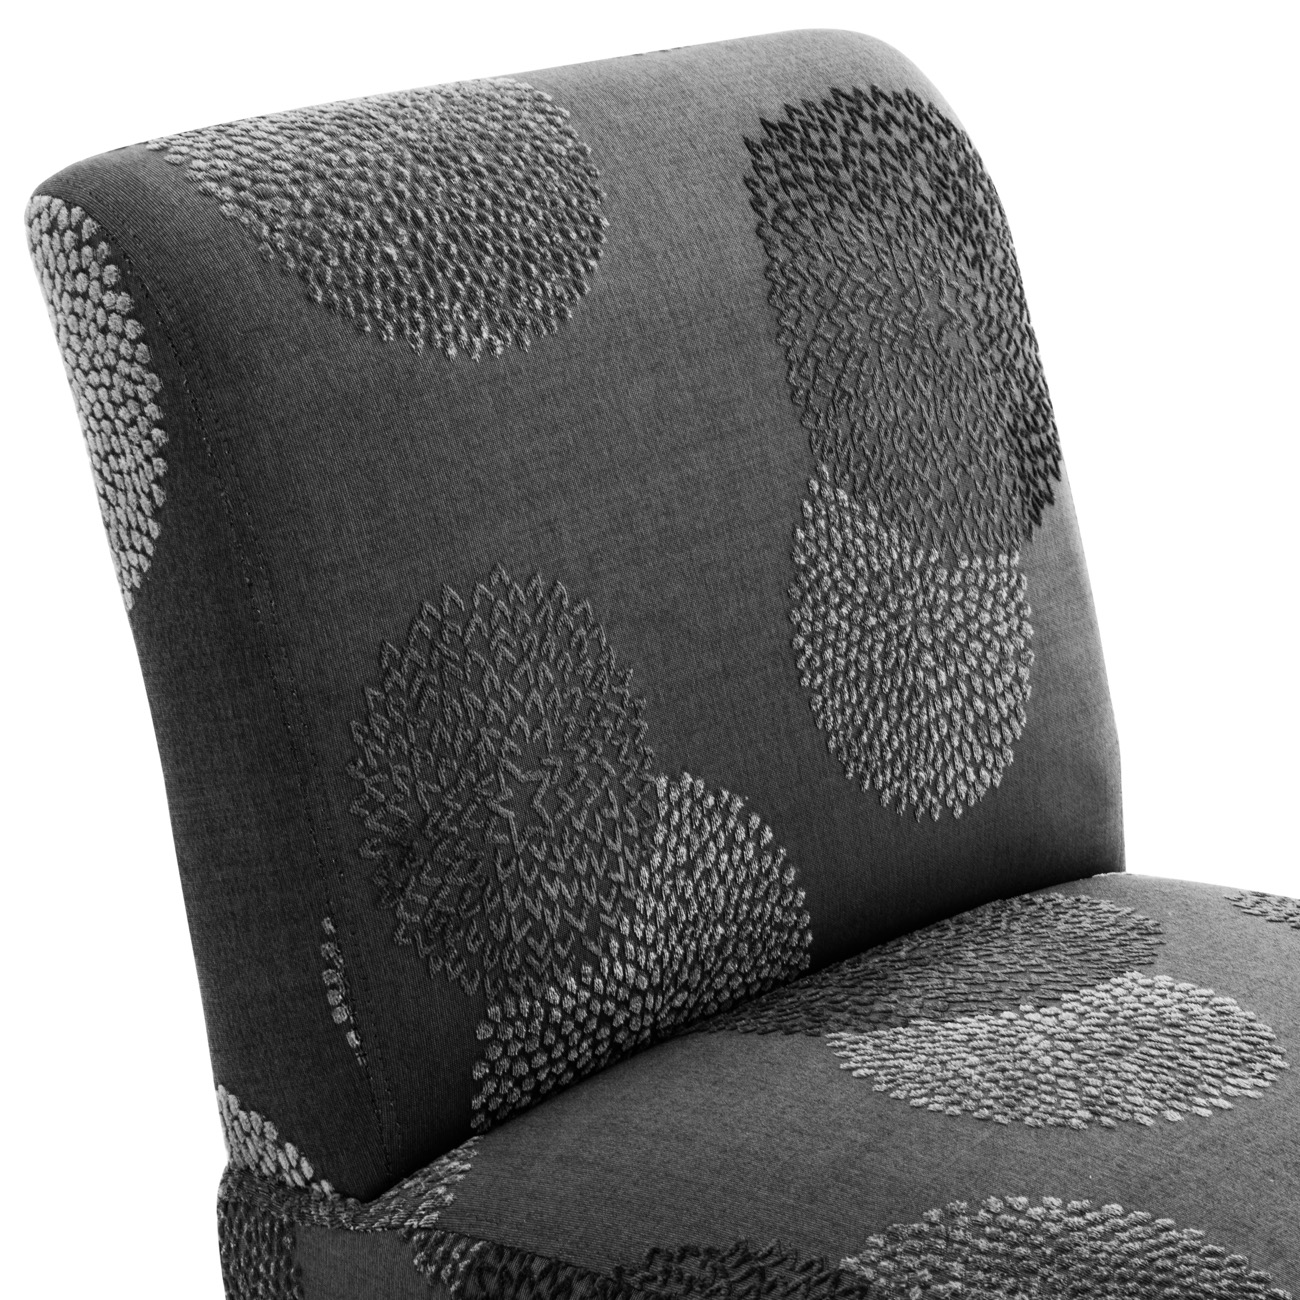 Prime Details About Upholstered Slipper Accent Armless Chair Bedroom Living Room Charcoal Sunflower Spiritservingveterans Wood Chair Design Ideas Spiritservingveteransorg